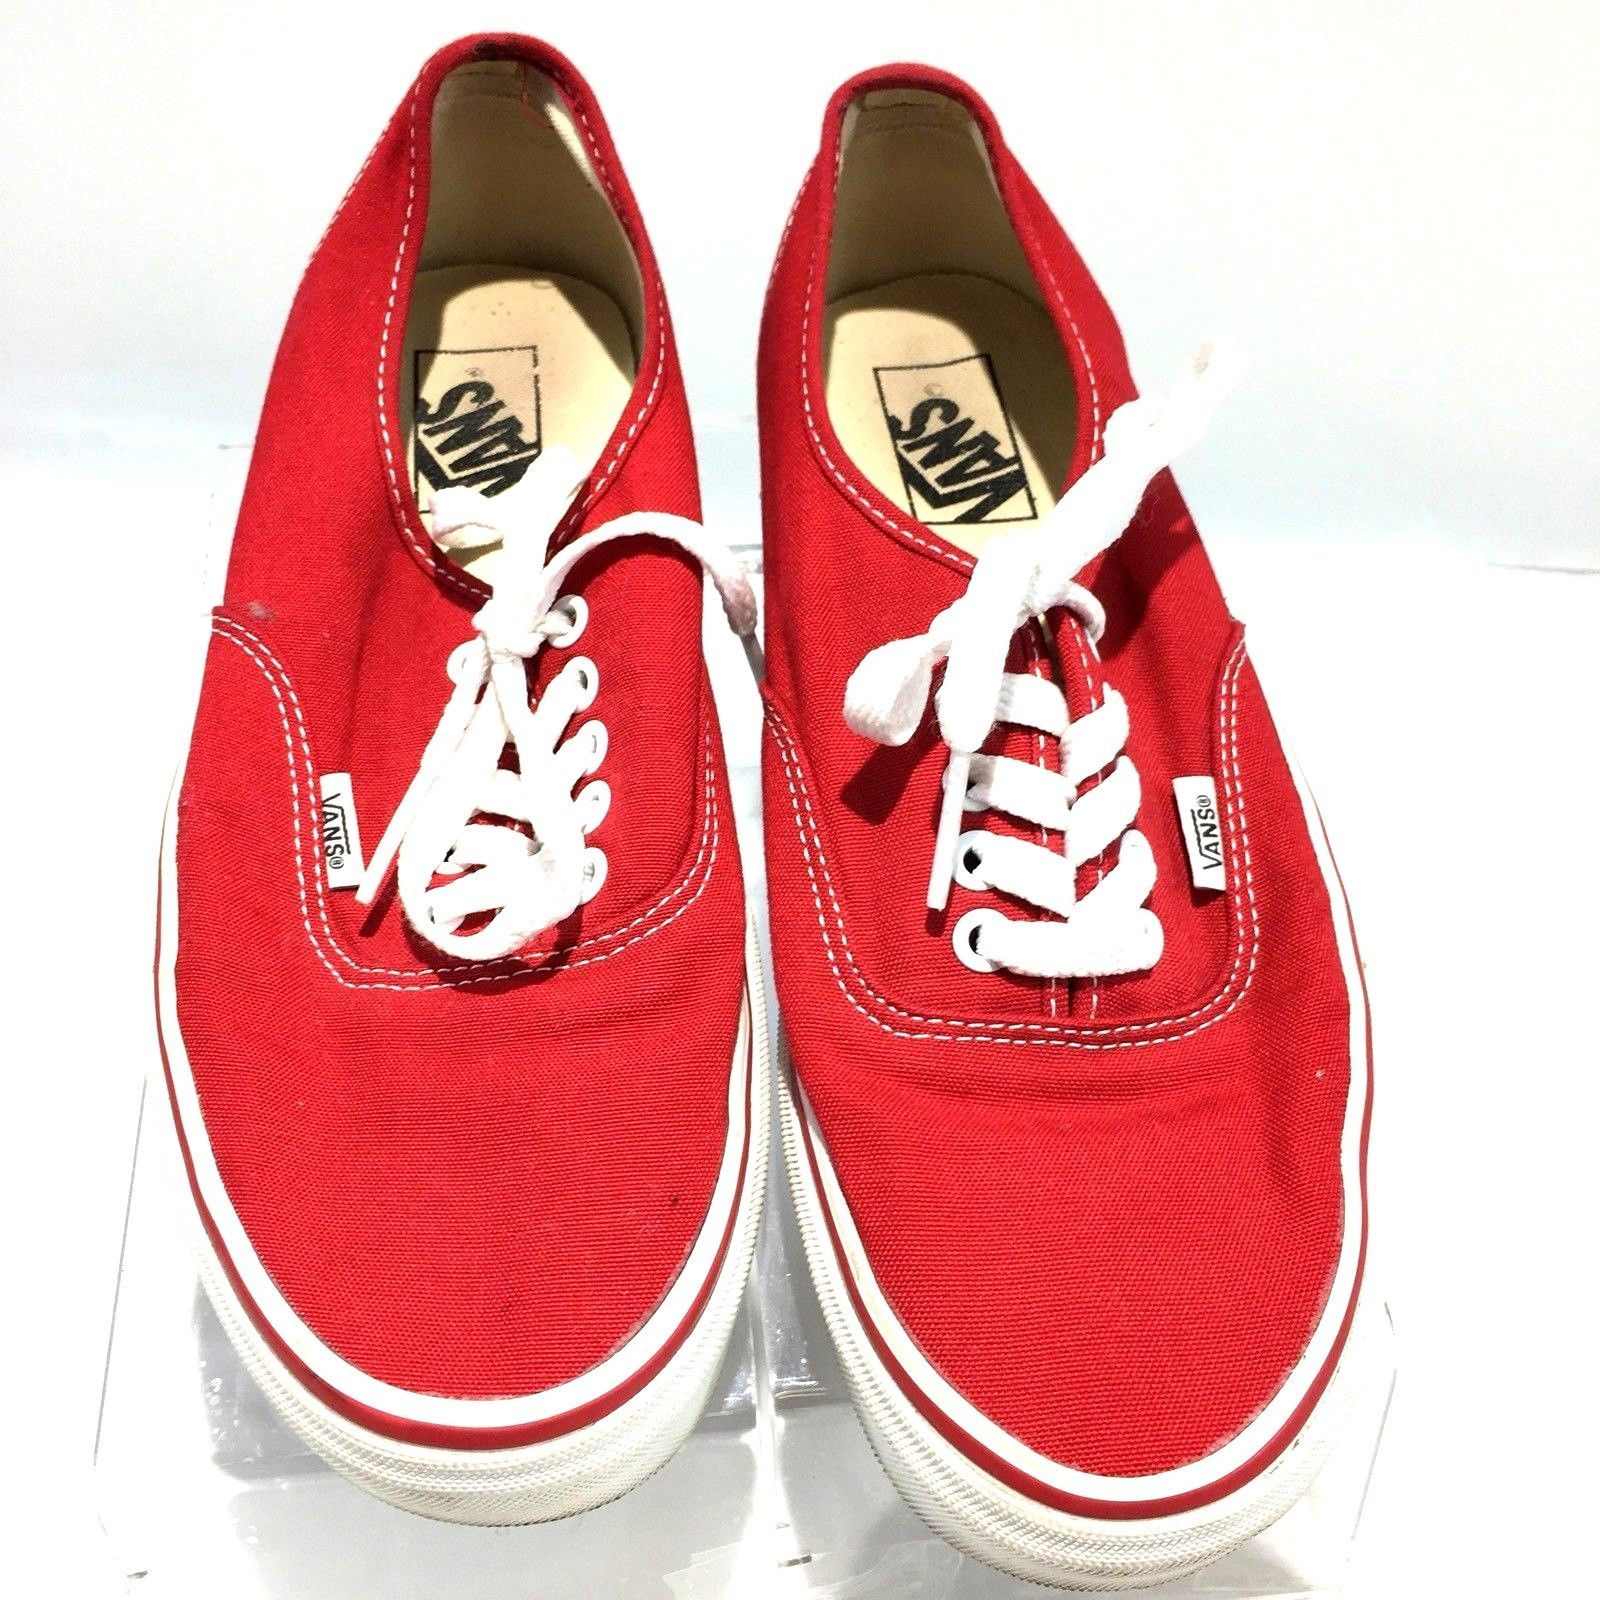 0956f65bda4 57. 57. Previous. VANS Off The Wall Red Canvas Low Cut Skateboard Sneakers  Mens Shoes Size 8.5M S5